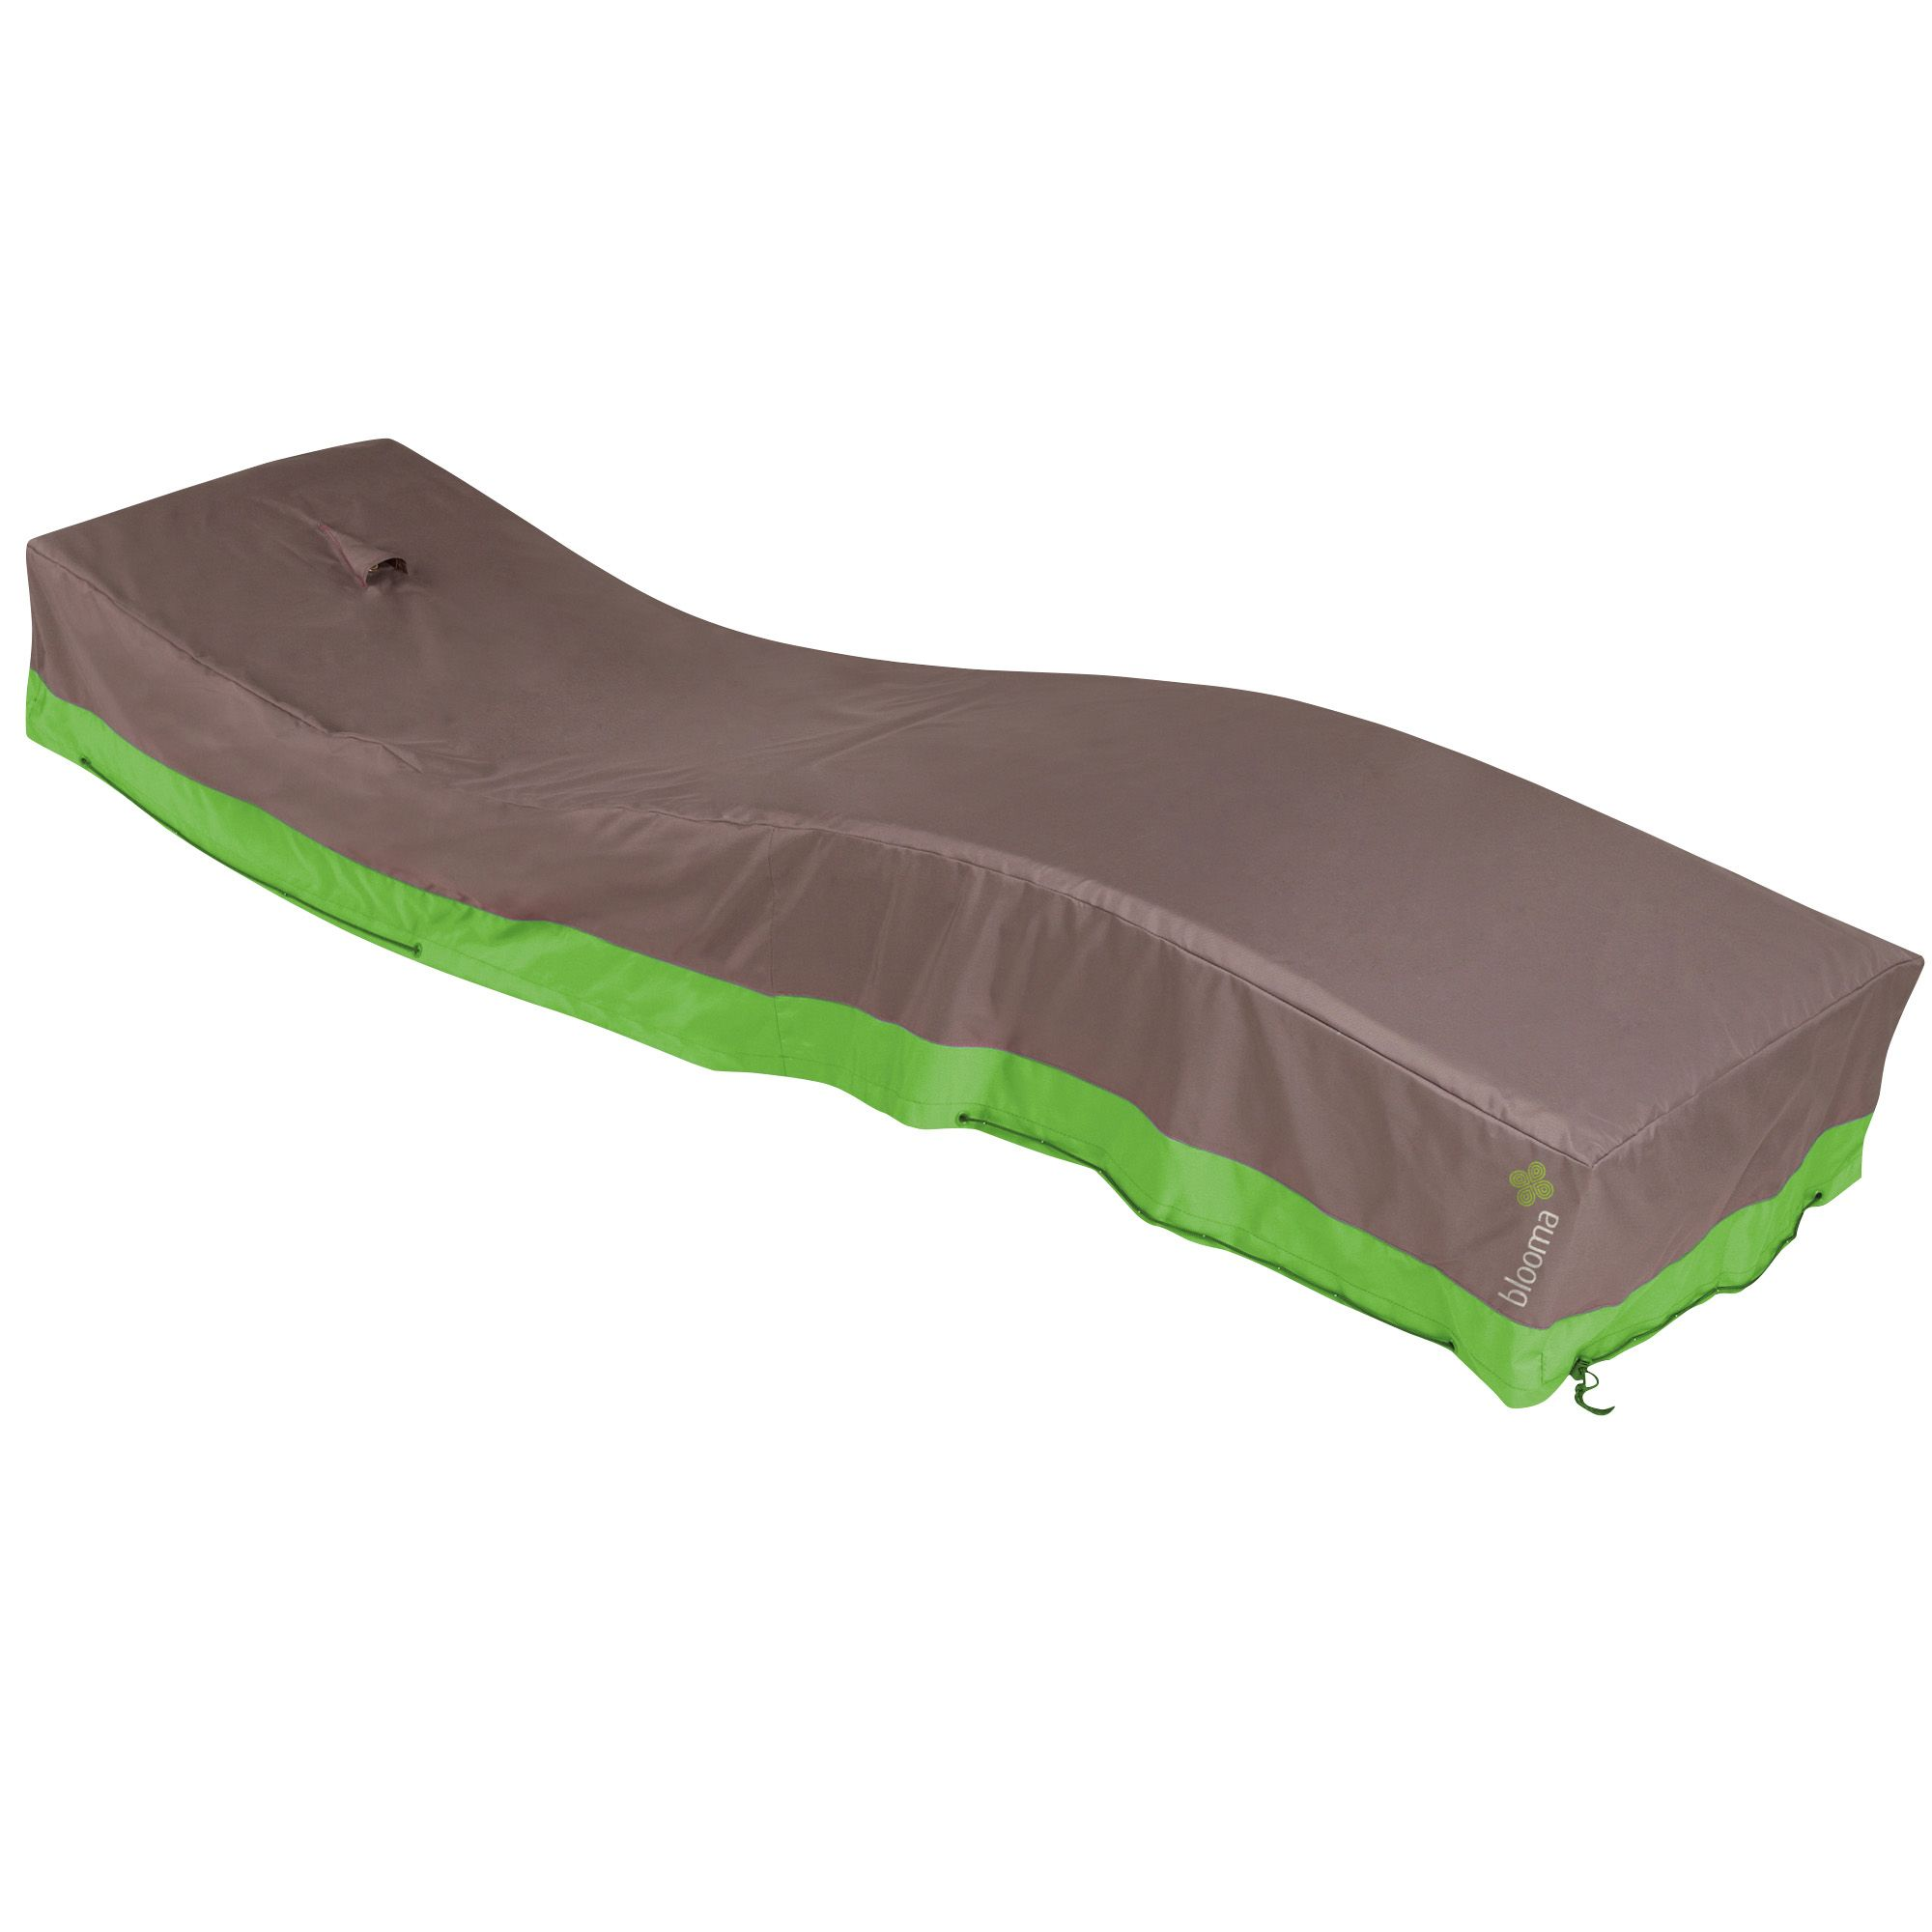 Blooma Mali Sunlounger Garden Furniture Cover Outdoors BRAND NEW T Garden